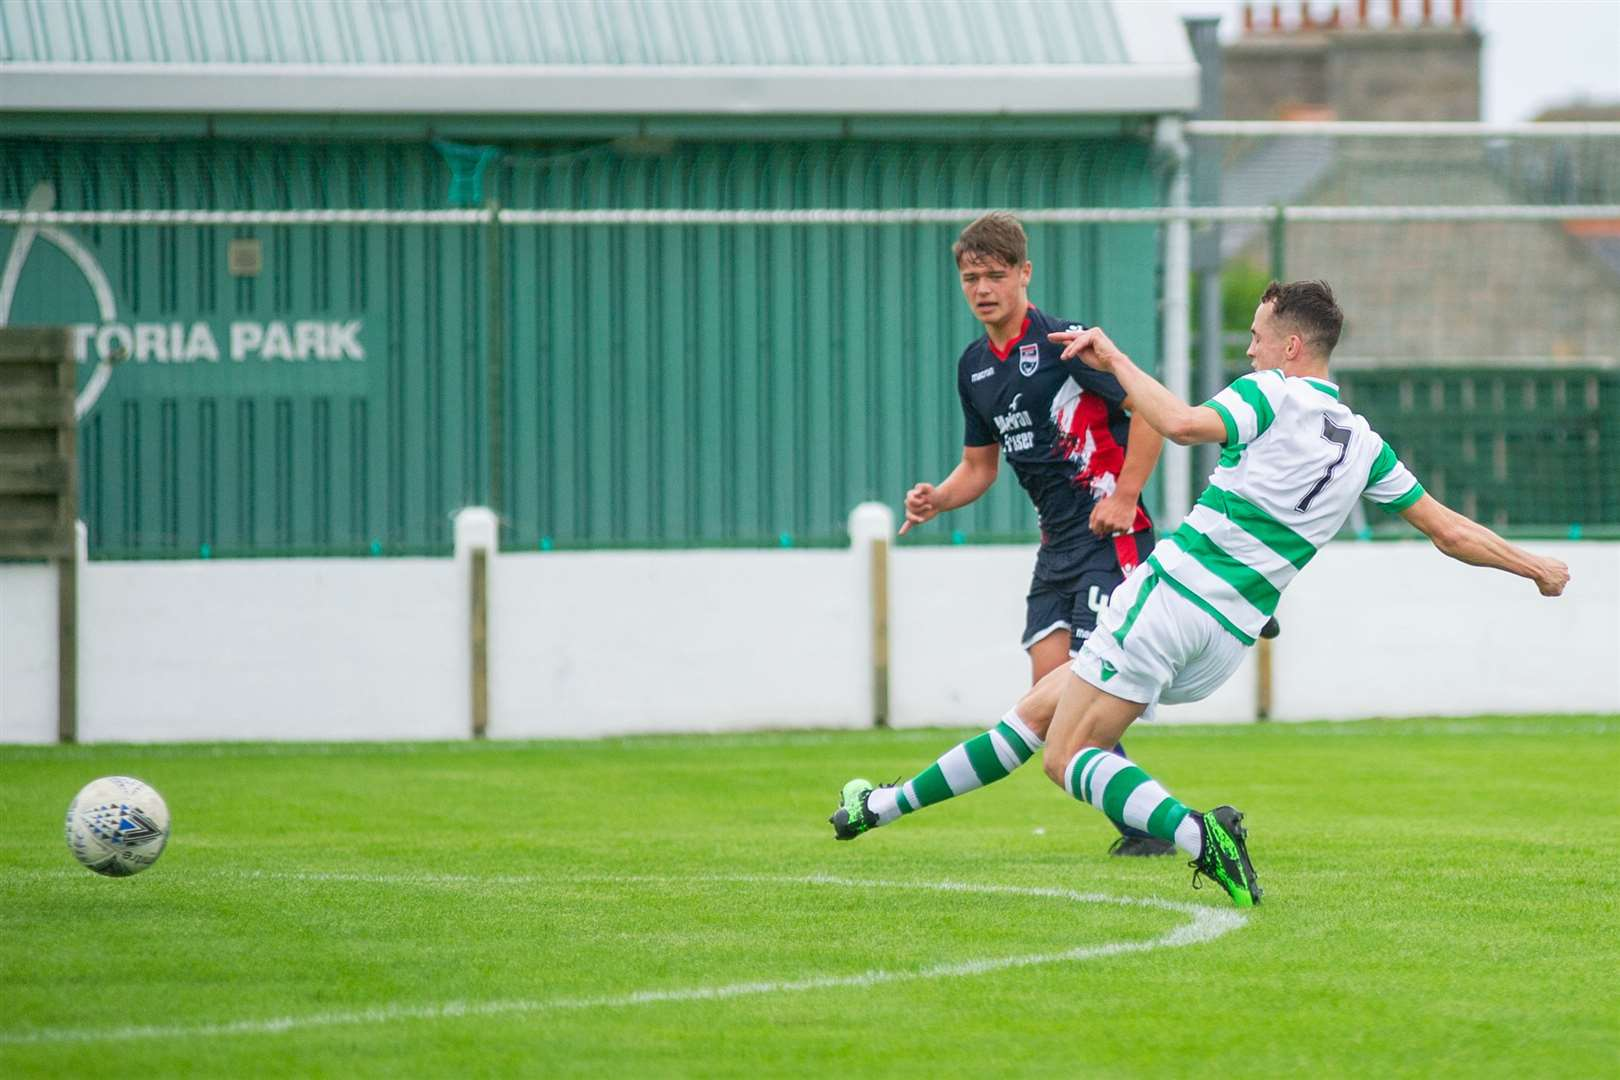 Buckie Thistle's Kevin Fraser opens the scoring...Buckie Thistle FC (3) vs Ross County XI (0) at Victoria Park, Buckie. Pre-season friendly 06/07/2019...Picture: Daniel Forsyth. Image No.044378.